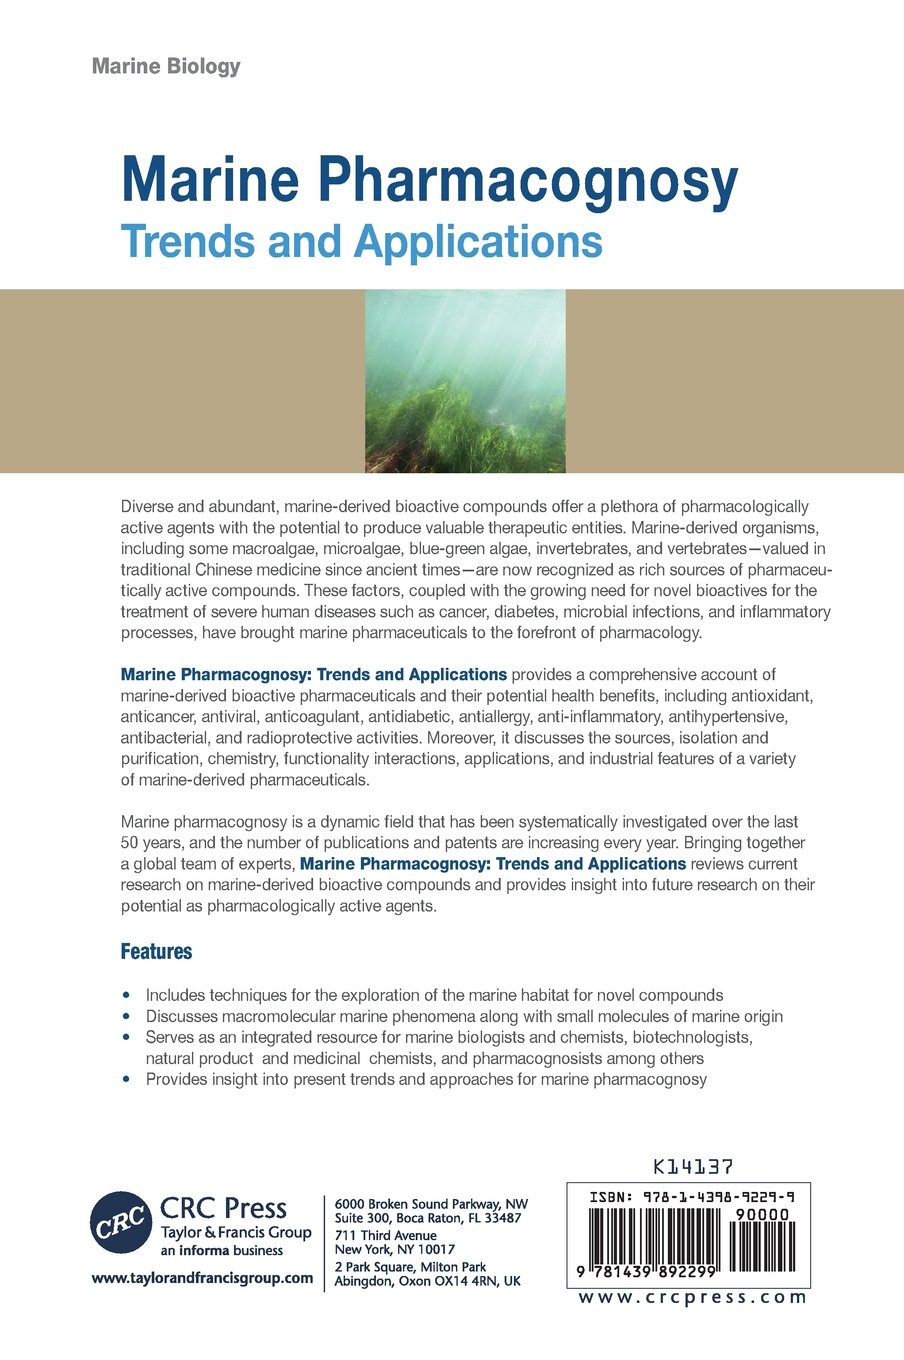 Marine Pharmacognosy: Trends and Applications